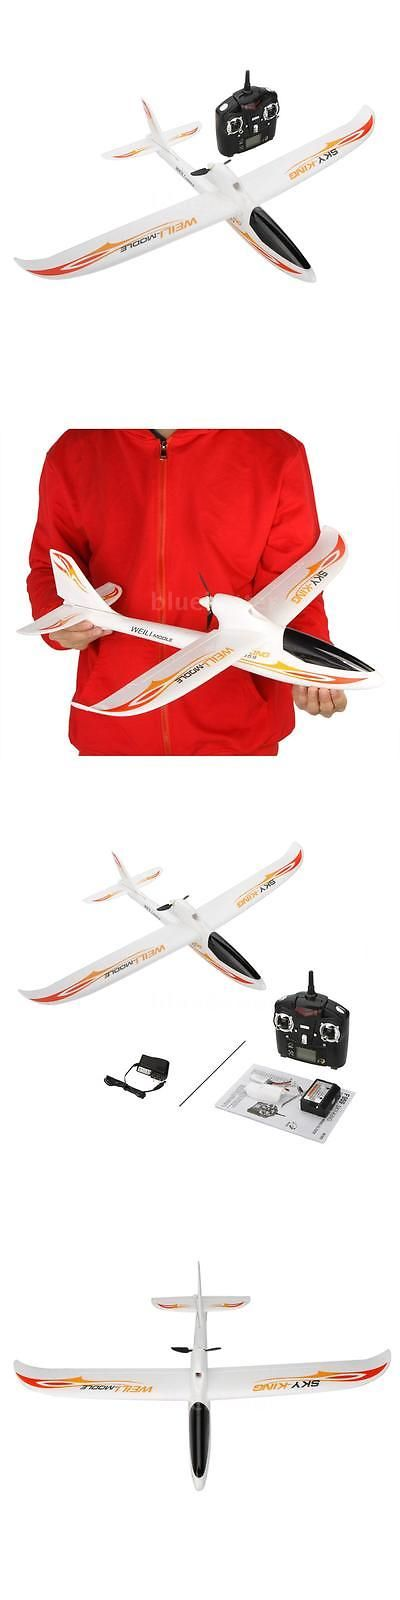 Other RC Model Vehicles and Kits 182186: Wltoys F959 Sky-King 2.4G 3Ch Radio Control Rc Airplane Aircraft Rtf Red Us D4u5 -> BUY IT NOW ONLY: $45.78 on eBay!